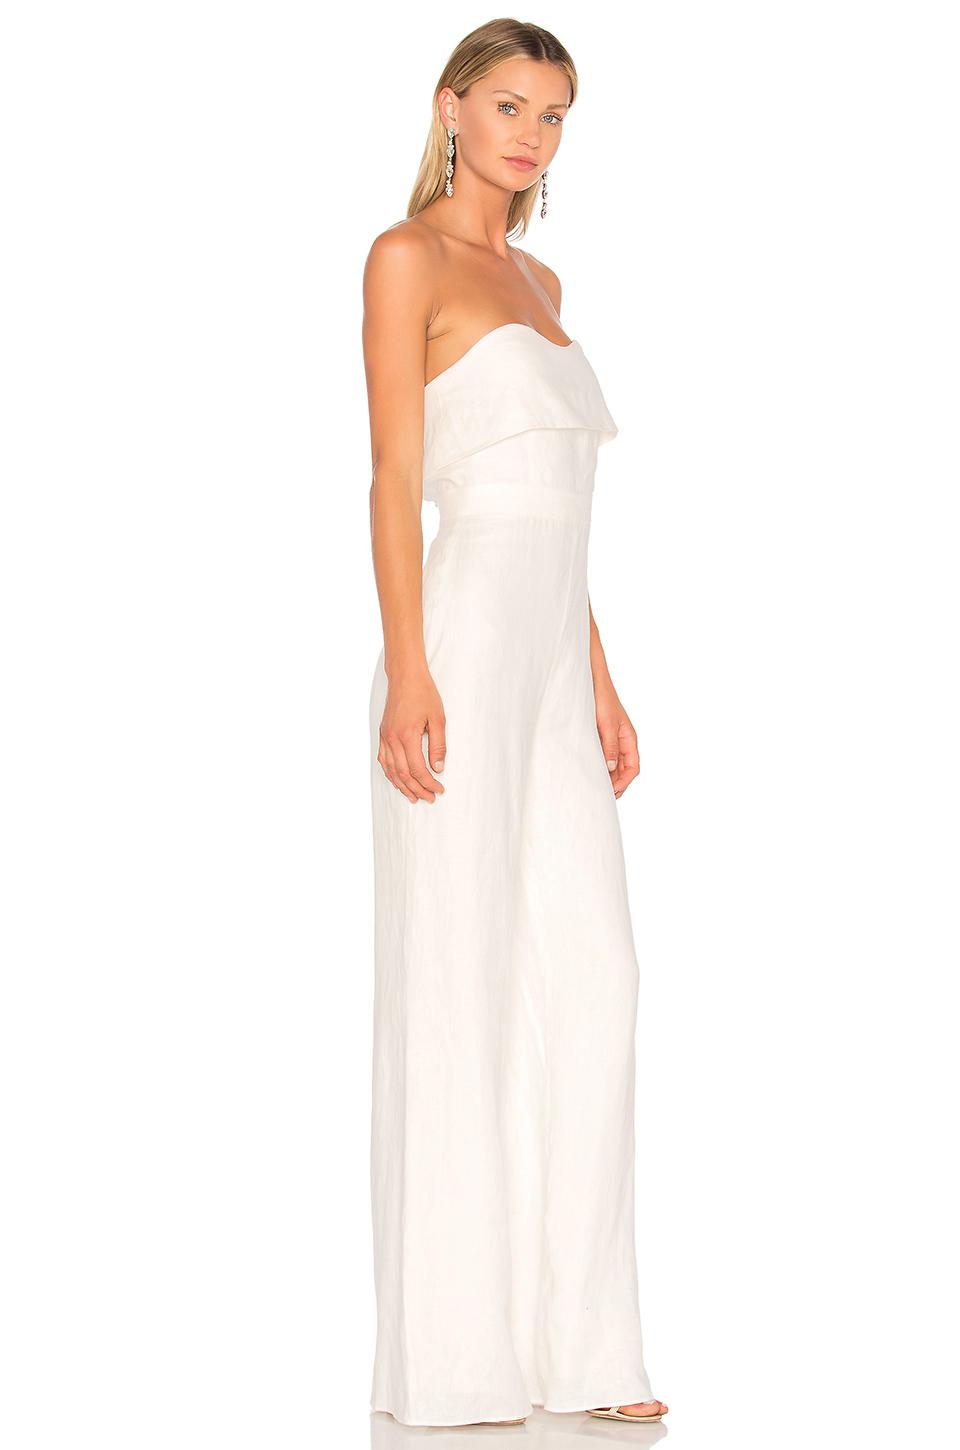 09eac4e3e283 Lyst - Alexis Jara Jumpsuit in White